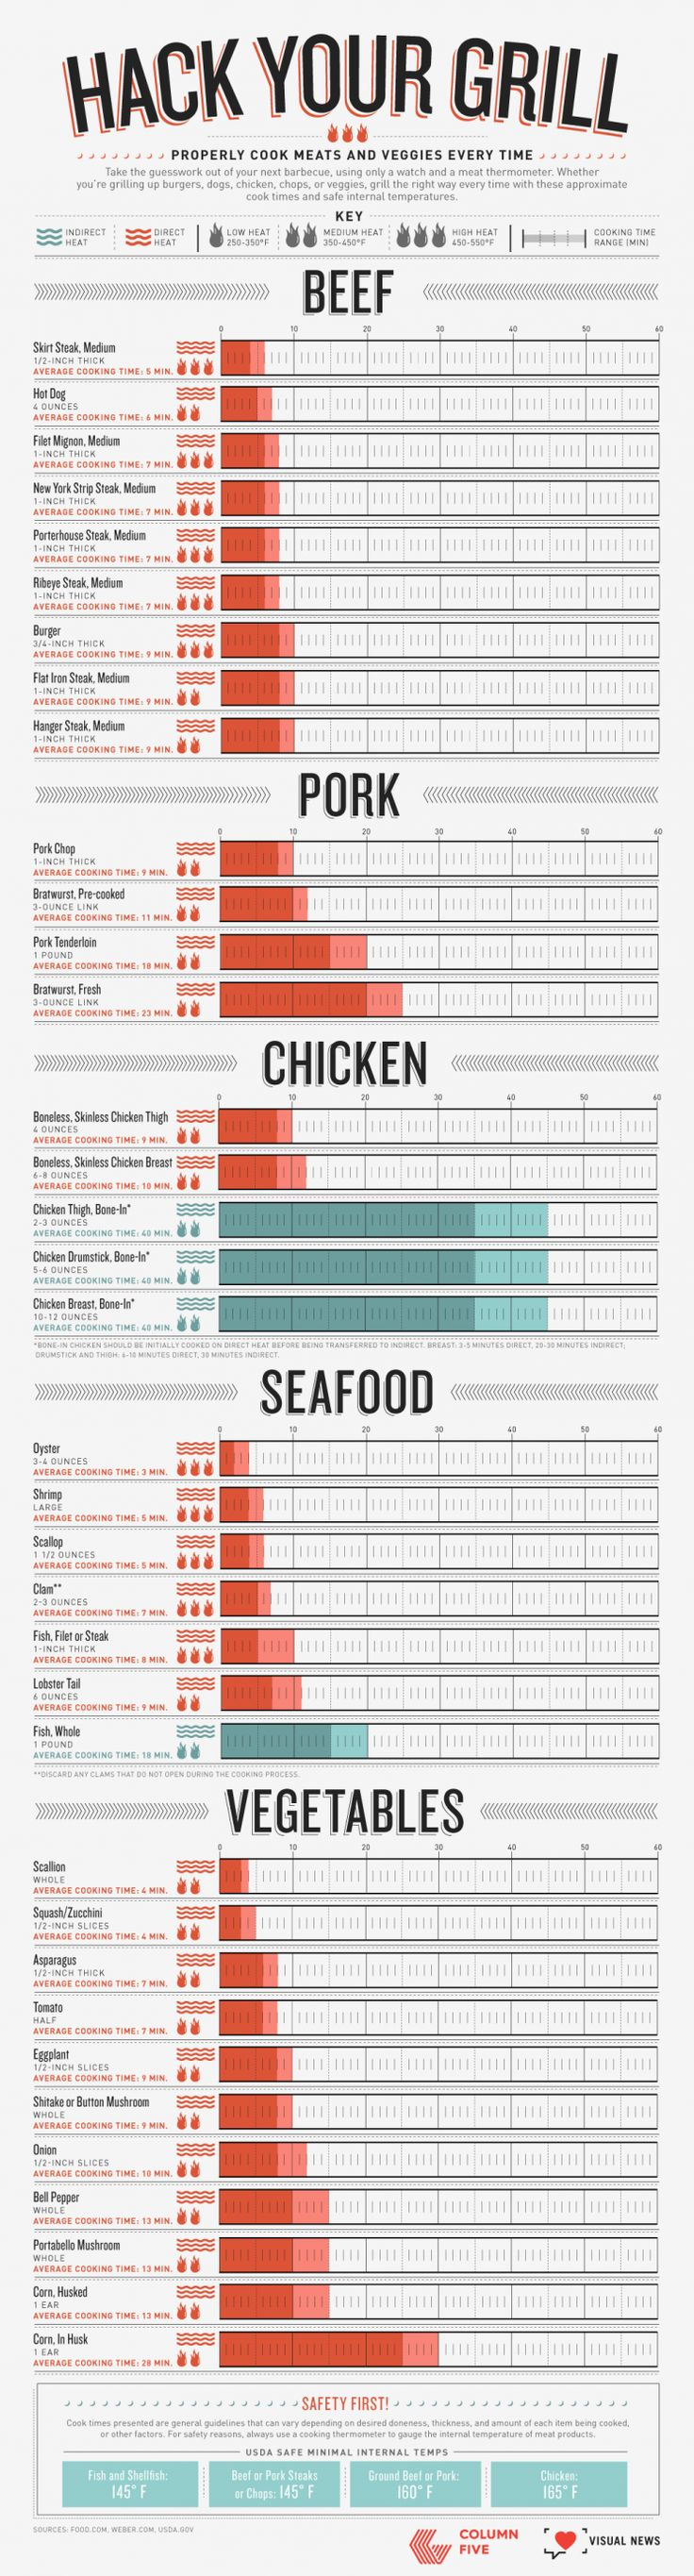 Summer's here, and that means it's time to fire up the grill!The question now is how do you avoid spending your summer feasting on burnt chunks of what was supposed to be a gourmet, outdoor meal?Look no further than this infographic from Column Five featuring grill guides for everything from corn in the husk to oysters.Via Column Five.Eat well with infographics.